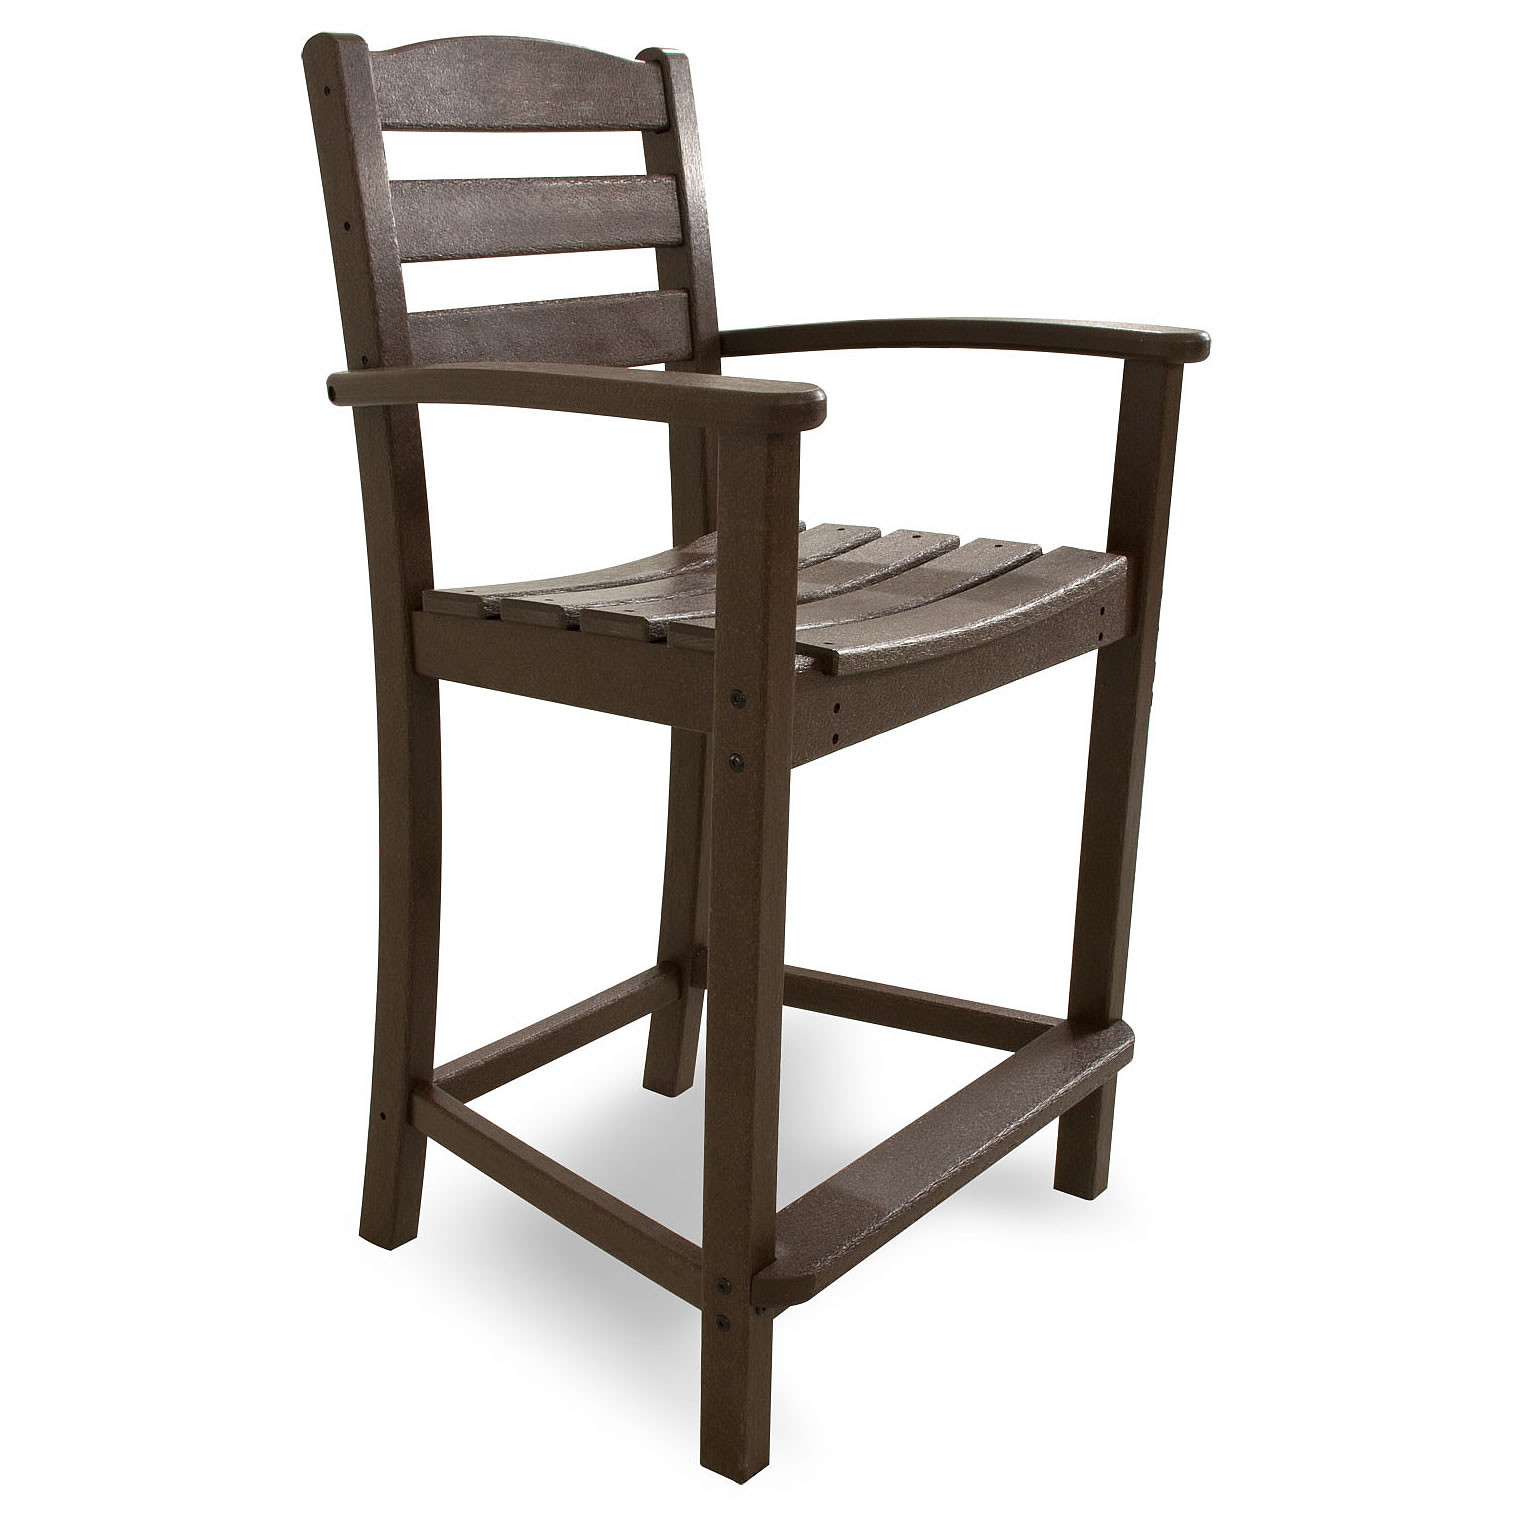 POLYWOOD La Casa Cafe Counter Arm Chair La Casa Cafe POLYWOOD